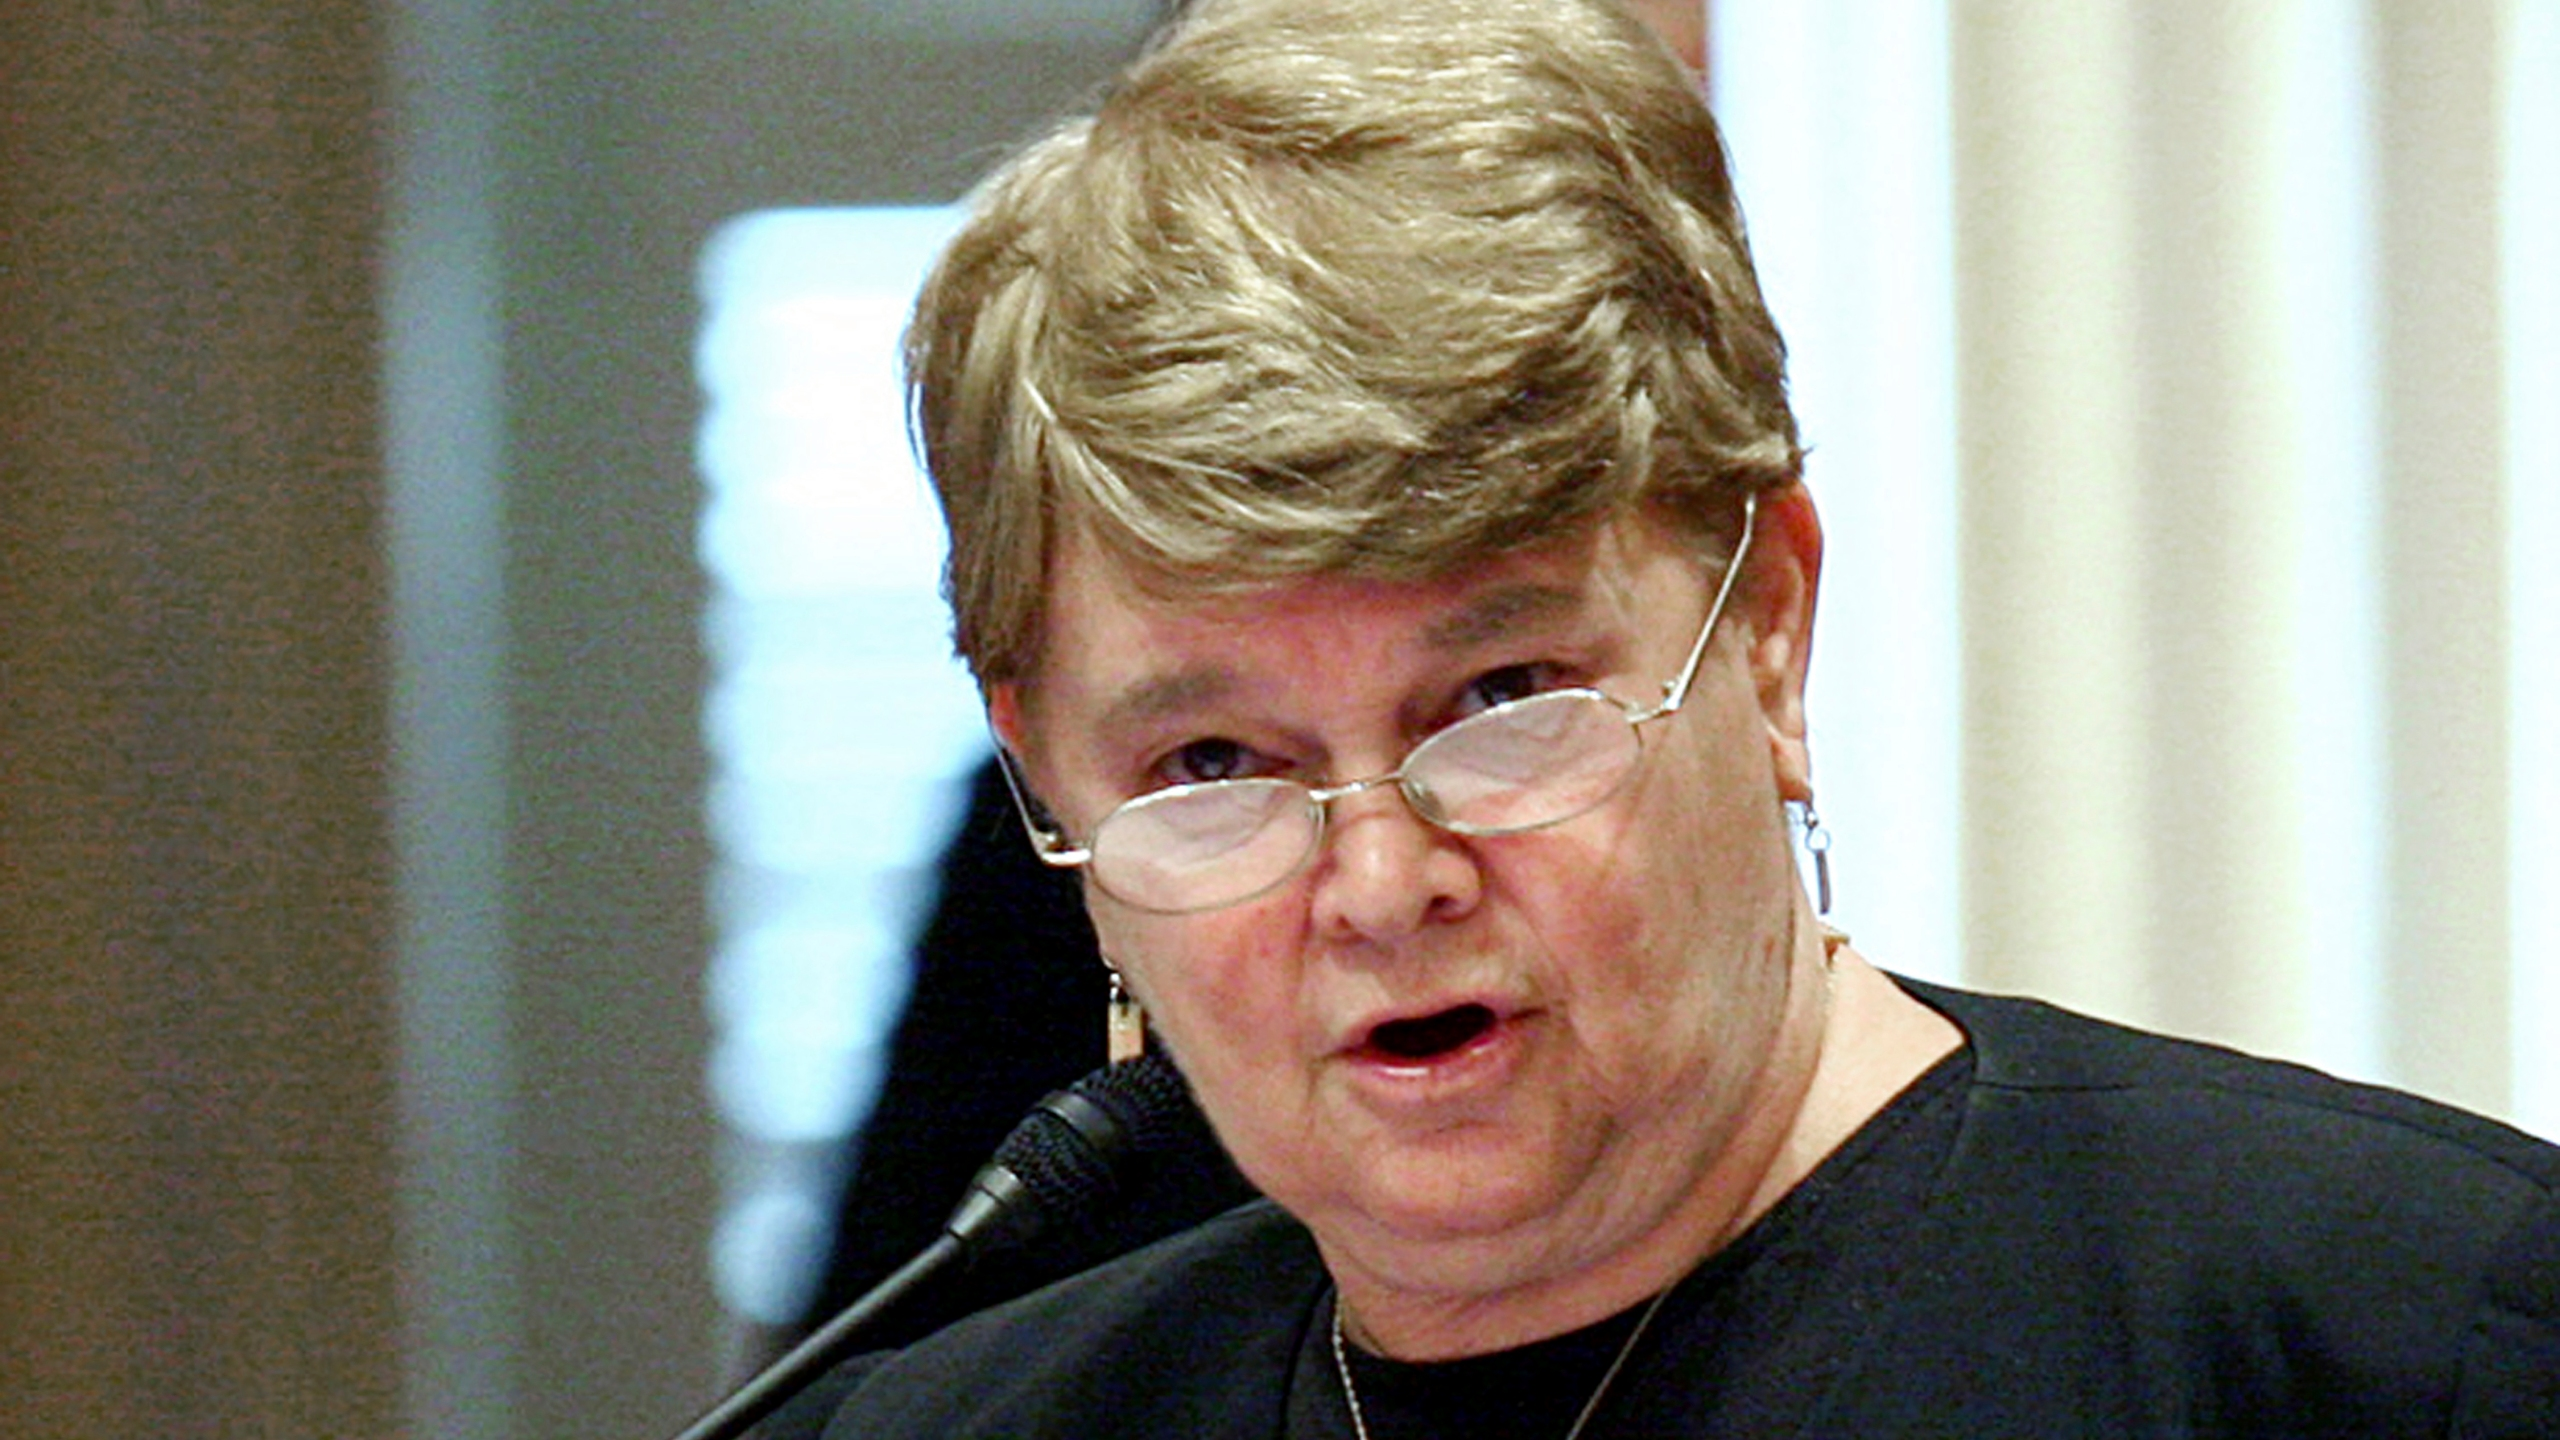 In this Aug. 31, 2008, file photo, then-state Sen. Sheila Kuehl, D-Santa Monica, speaks on the floor of the Capitol in Sacramento, Calif. (AP Photo/Steve Yeater, File)